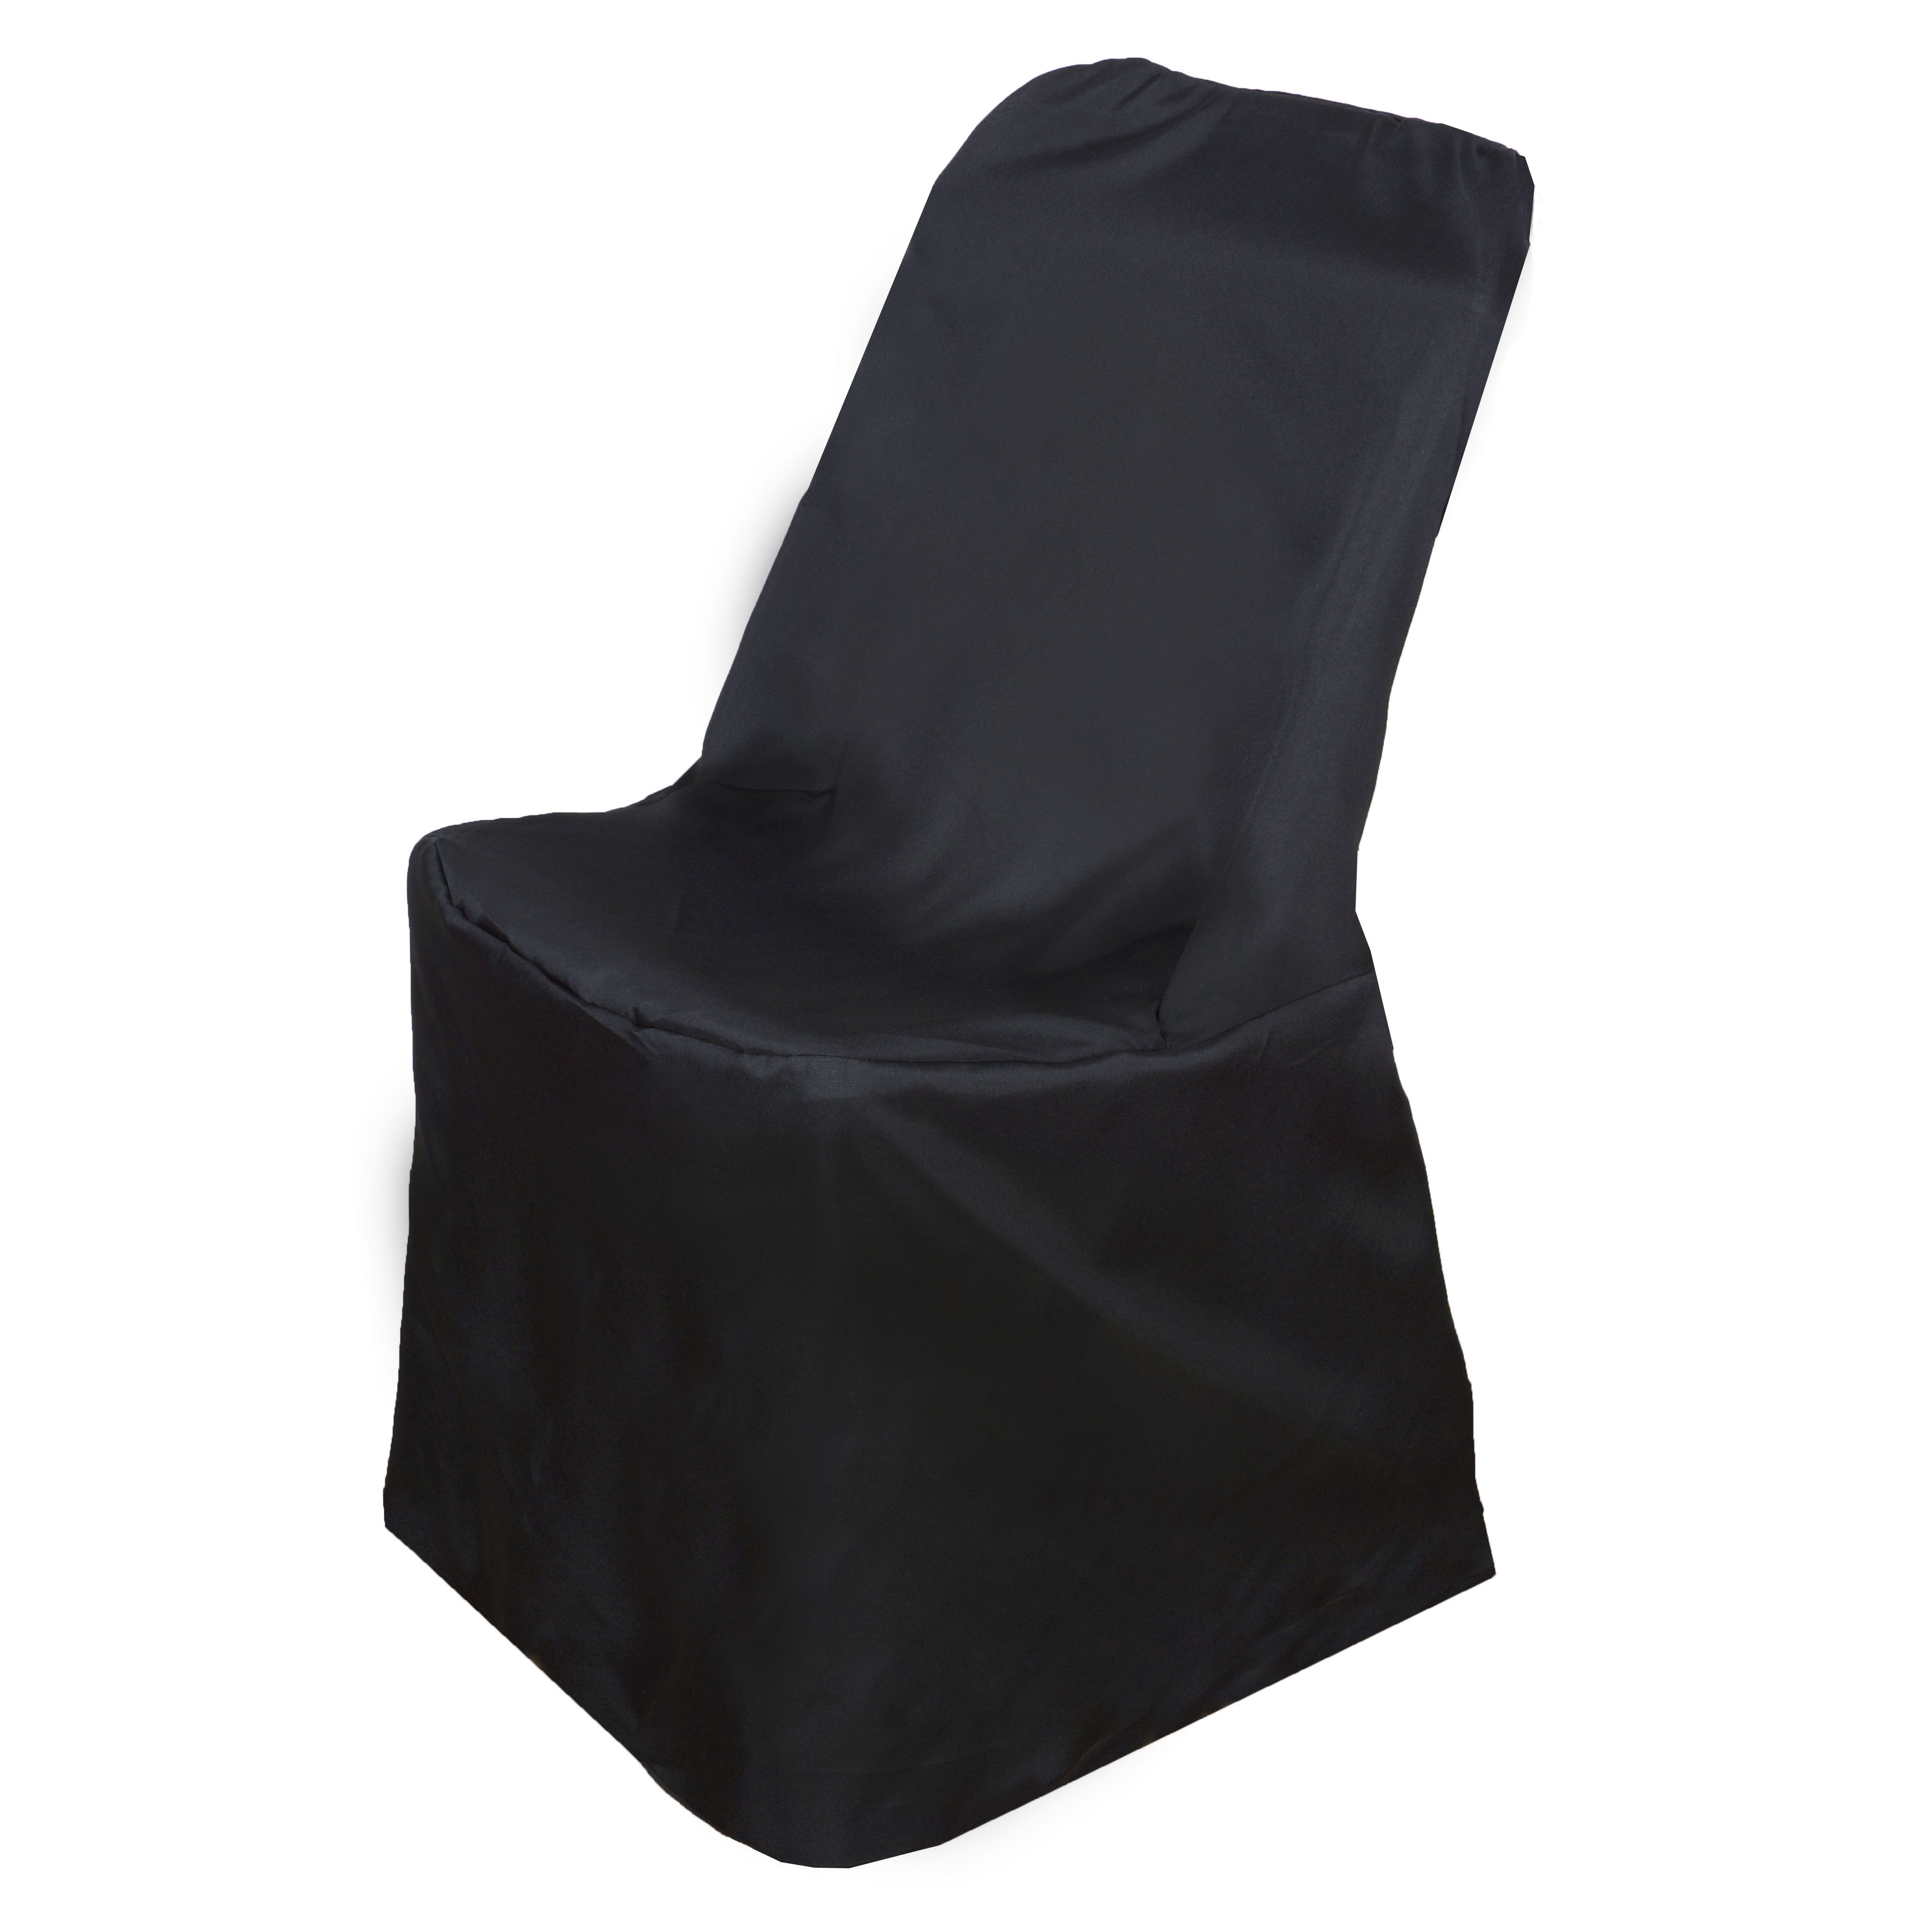 Folding chair covers wholesale under 1 - 1 Sample Lifetime Folding Chair Cover Polyester Wedding